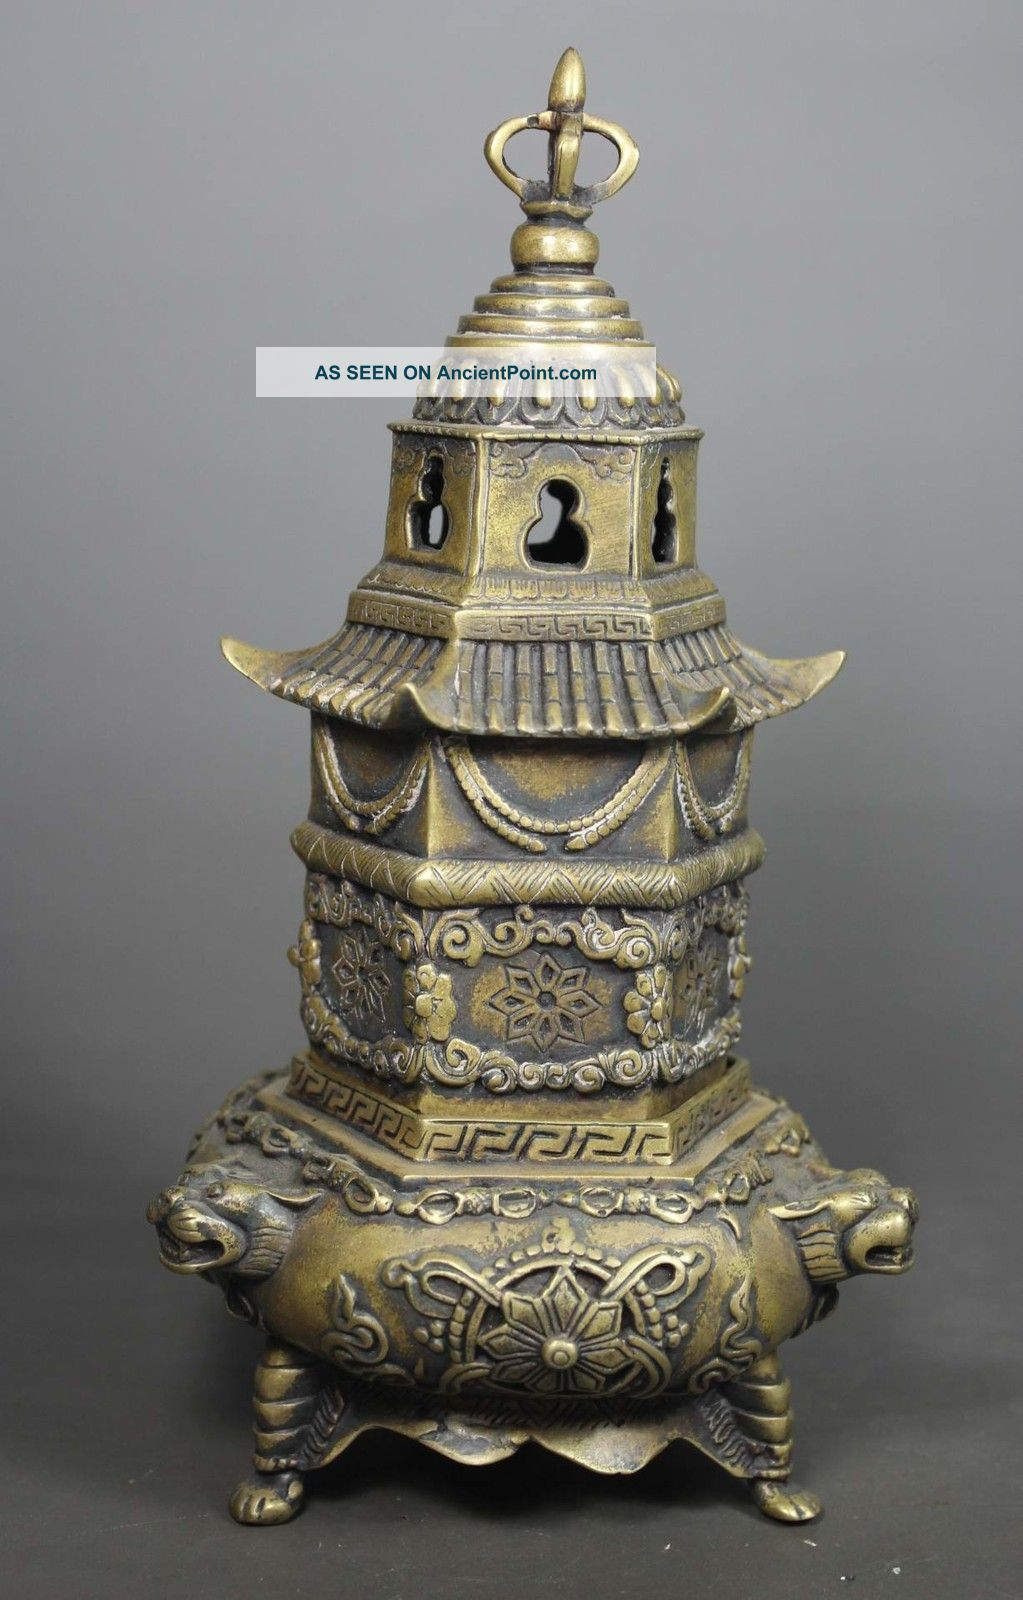 Chinese Old Very Rare Copper Handwork Hammer Pagoda Incense Burner ☆☆☆☆☆ Buddha photo